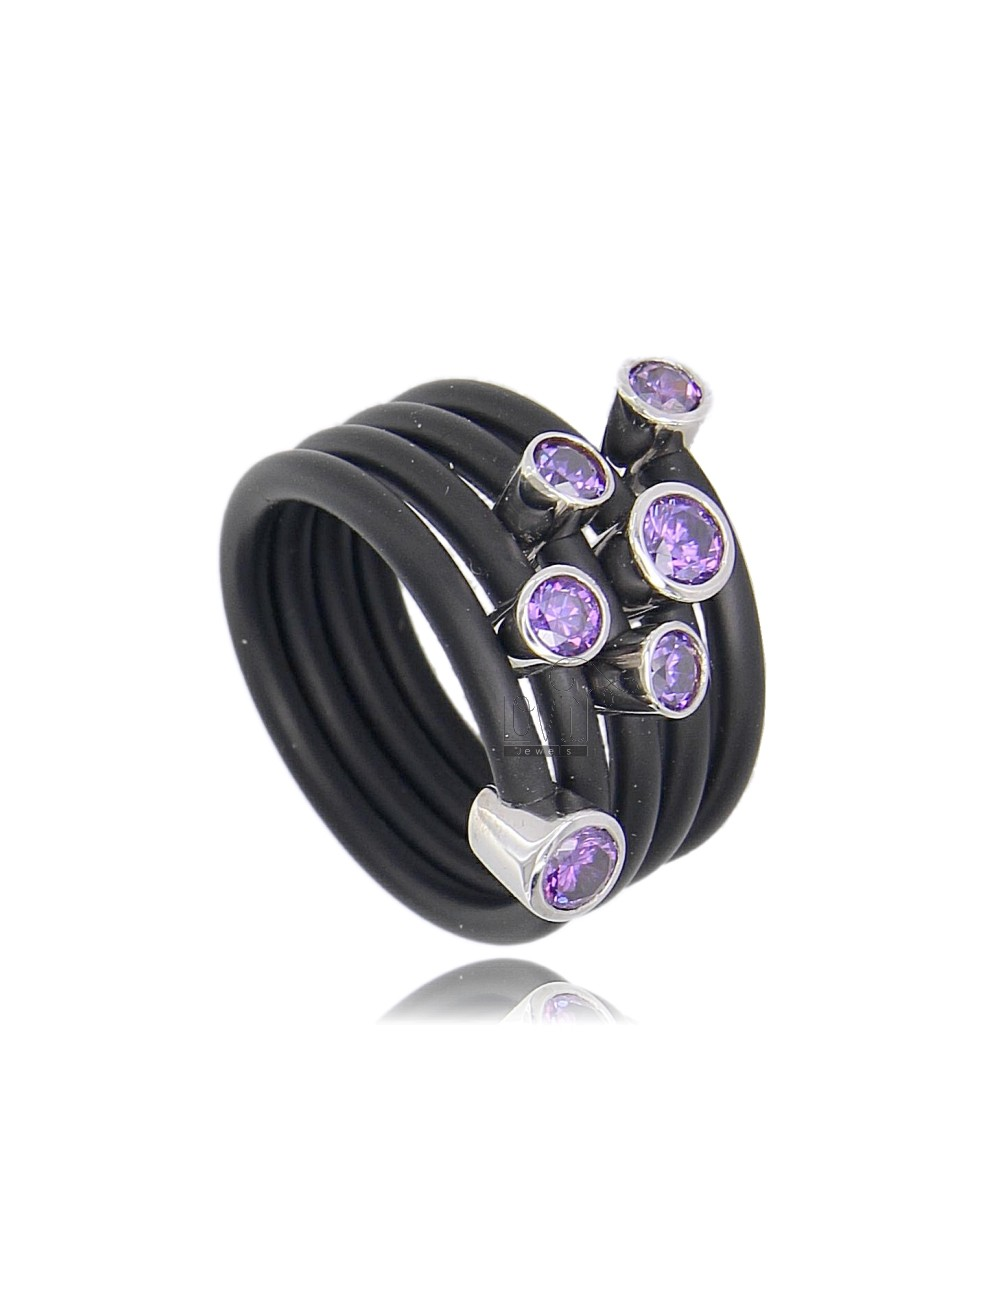 RING RUBBER &39A TUBE IN 5 ROUNDS WITH ouches AG TIT 925 ‰ ZIRCONIA WITH PURPLE SIZE 14